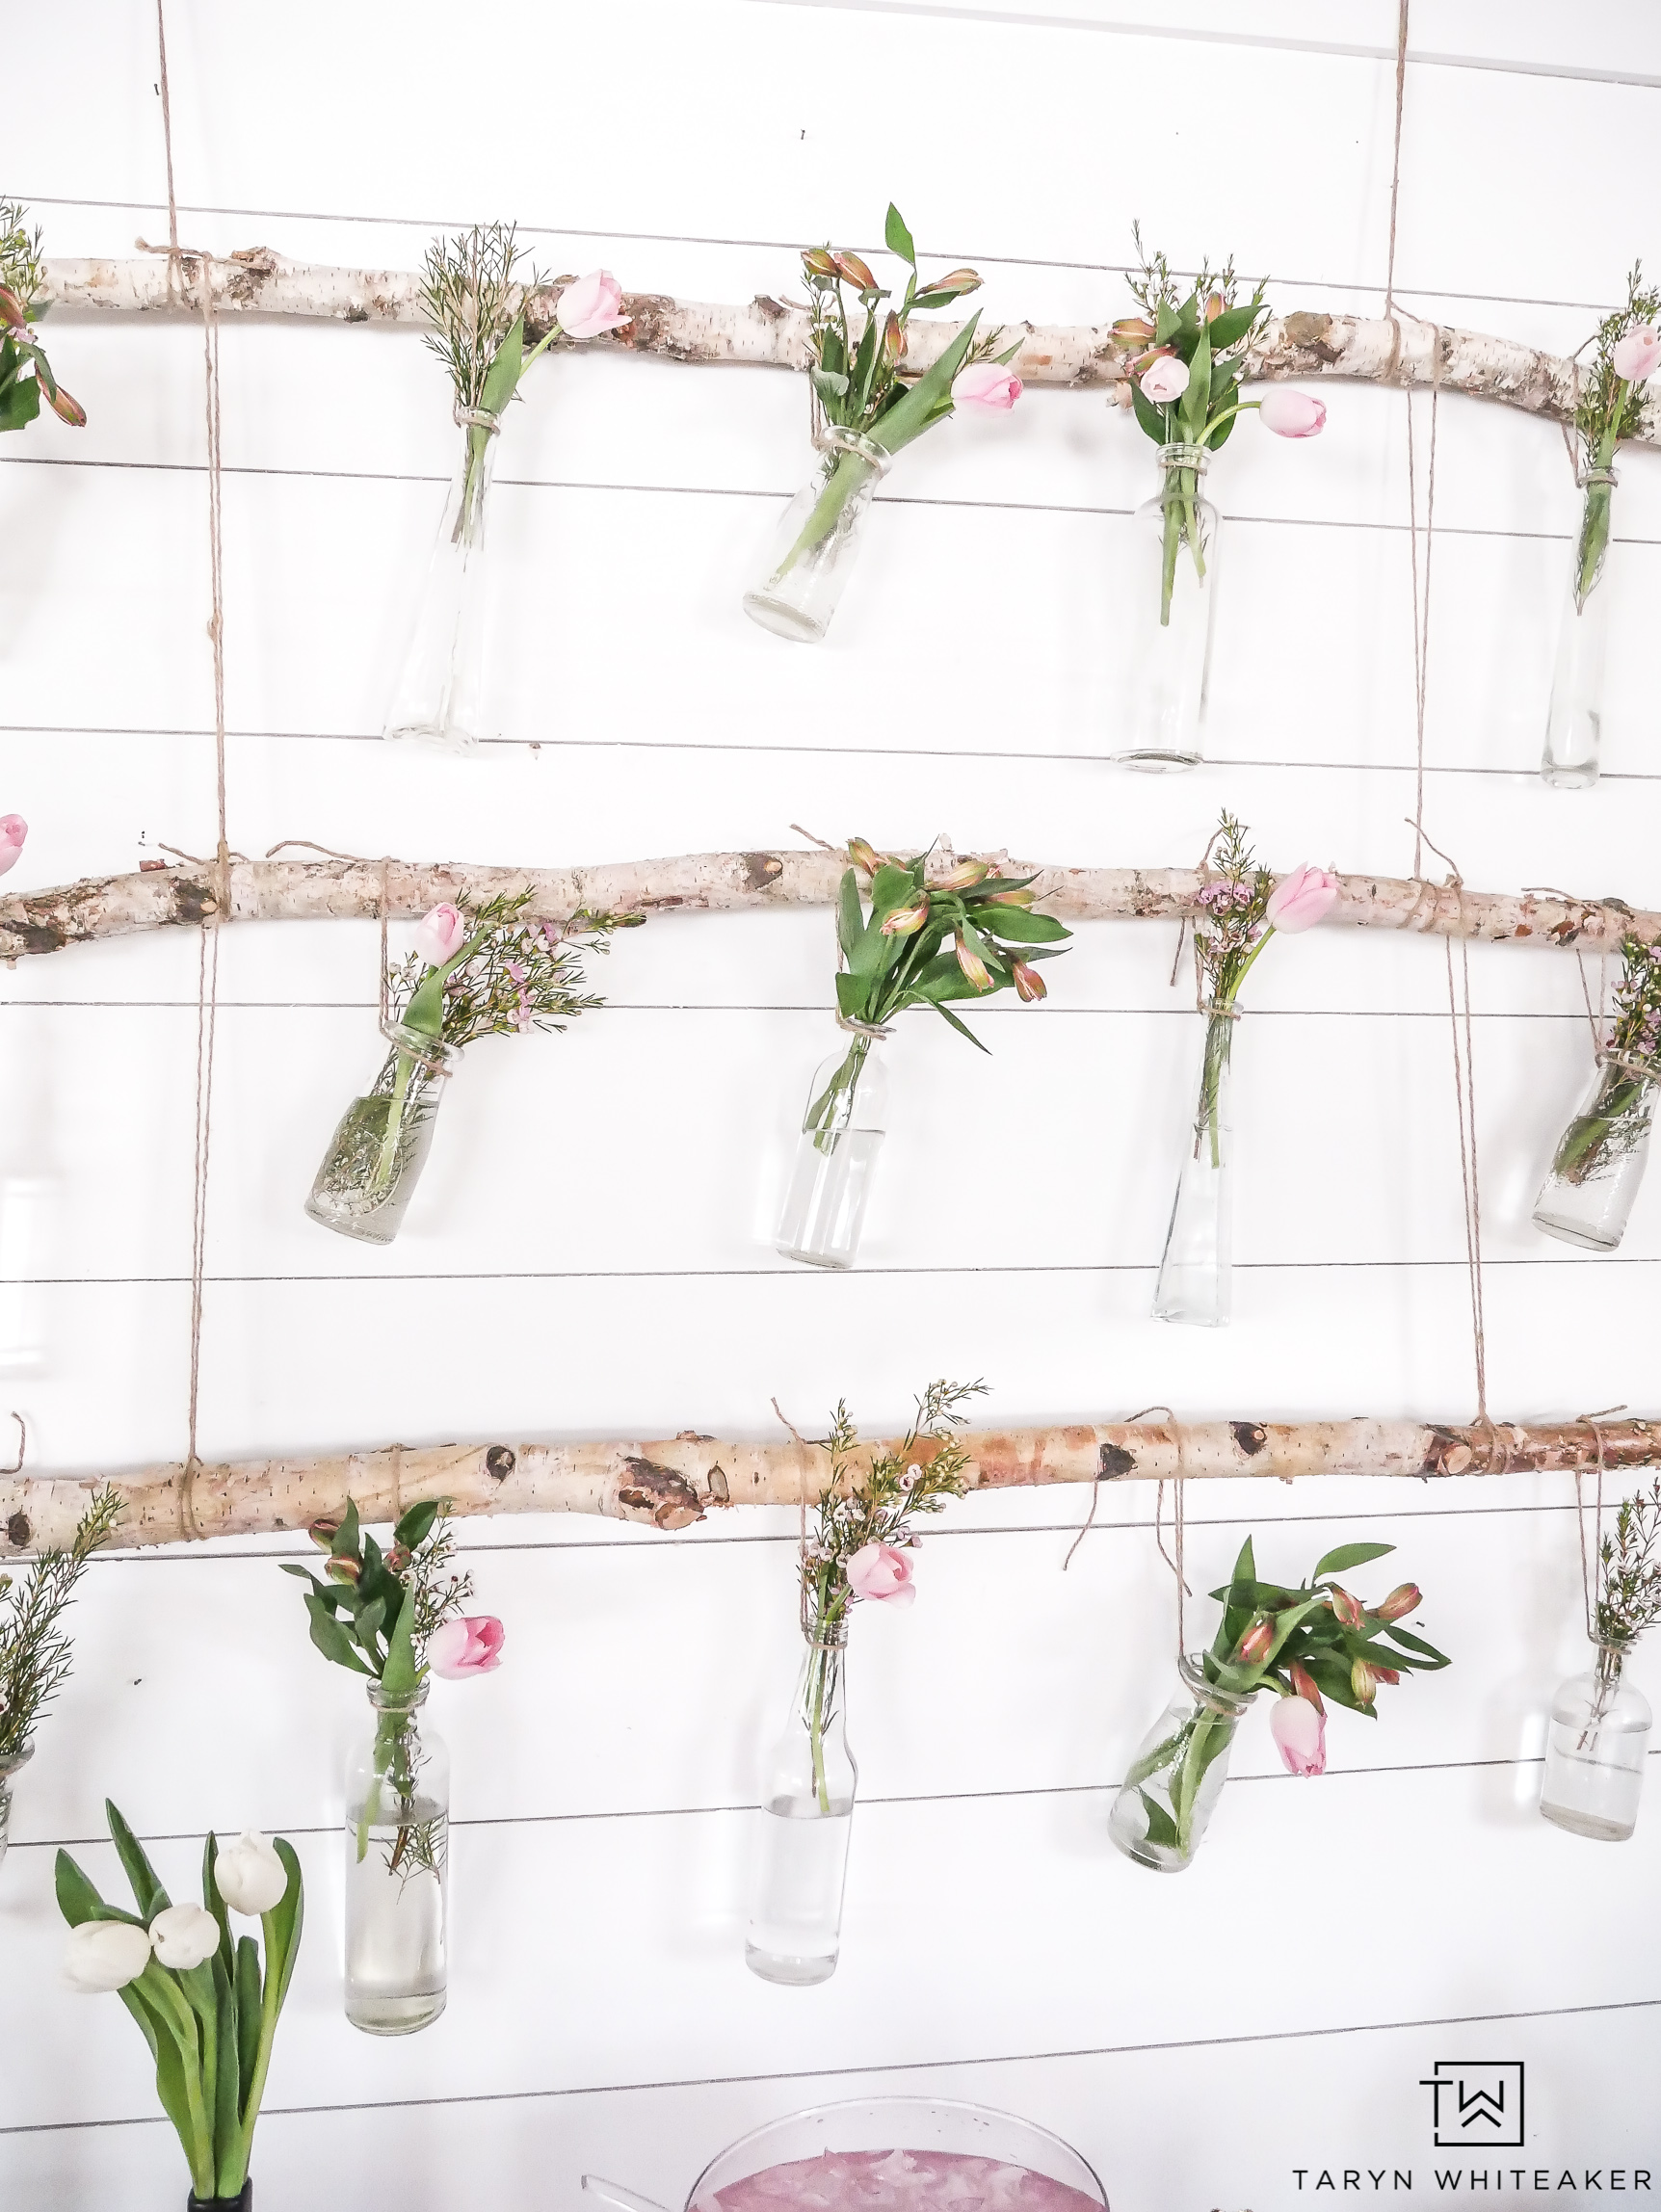 Branch floral hanger wall art by Taryn Whiteaker, featured on Funky Junk Interiors